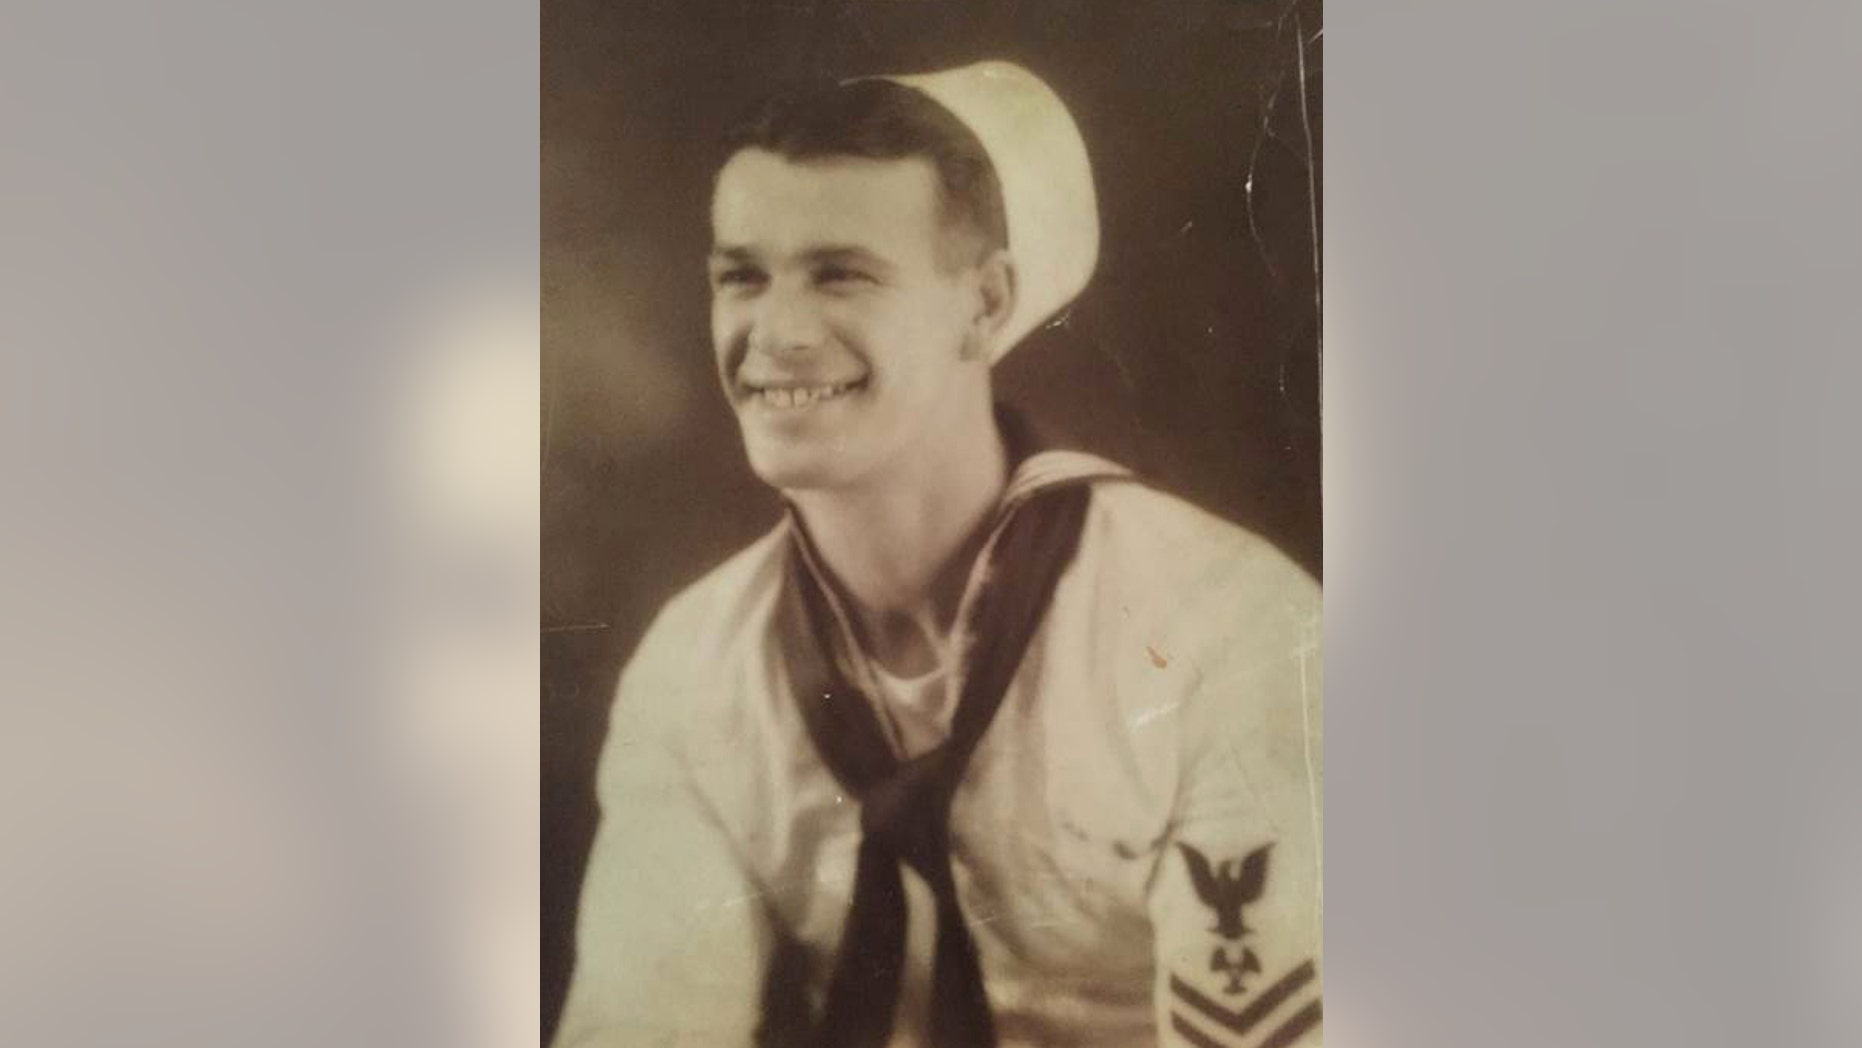 Alfred Wells of Syracuse is seen in an undated photo provided by his grandaughter, Shannon Enochs. Wells of Syracuse was 32 when he was among the 429 crewmembers of the USS Oklahoma killed on Dec. 7, 1941.  The remains of Wells are scheduled to arrive in his upstate hometown of Syracuse for burial Friday, June 10, 2016. His funeral service is Saturday followed by burial in a veterans cemetery in Syracuse. (Shannnon Enochs via AP)